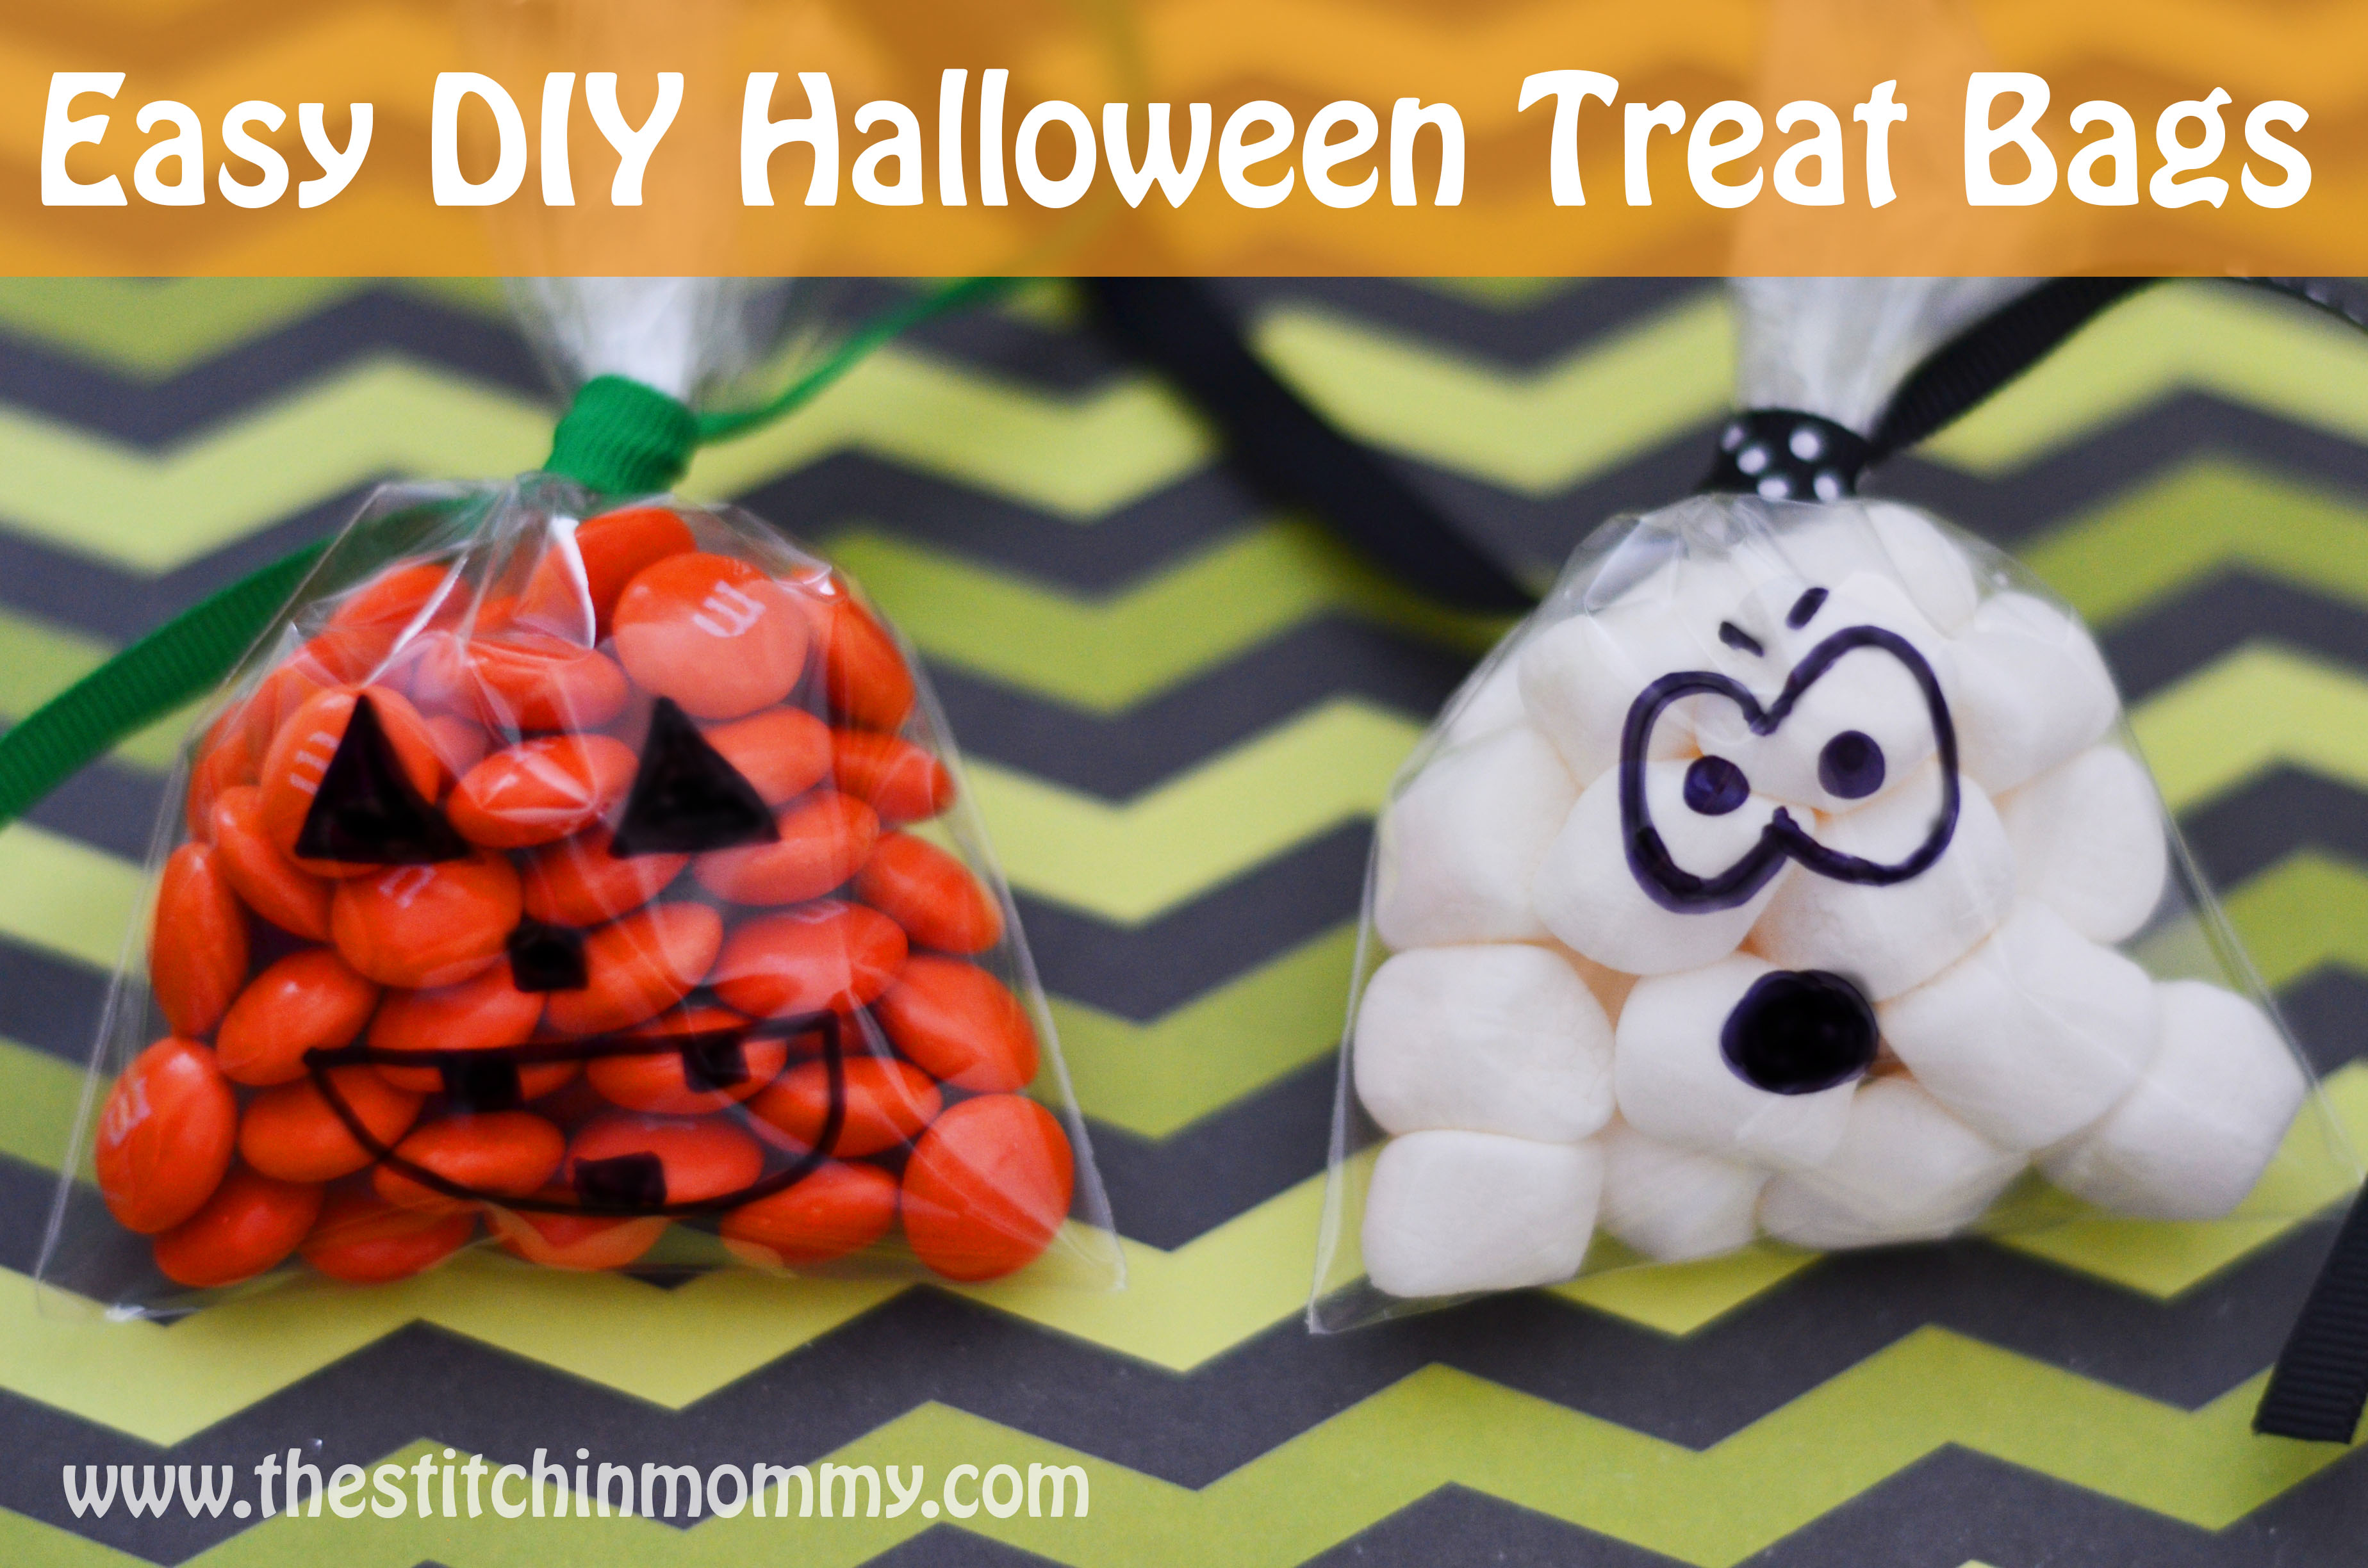 Easy DIY Halloween Treat Bags from The Stitchin' Mommy - GYCT Designs